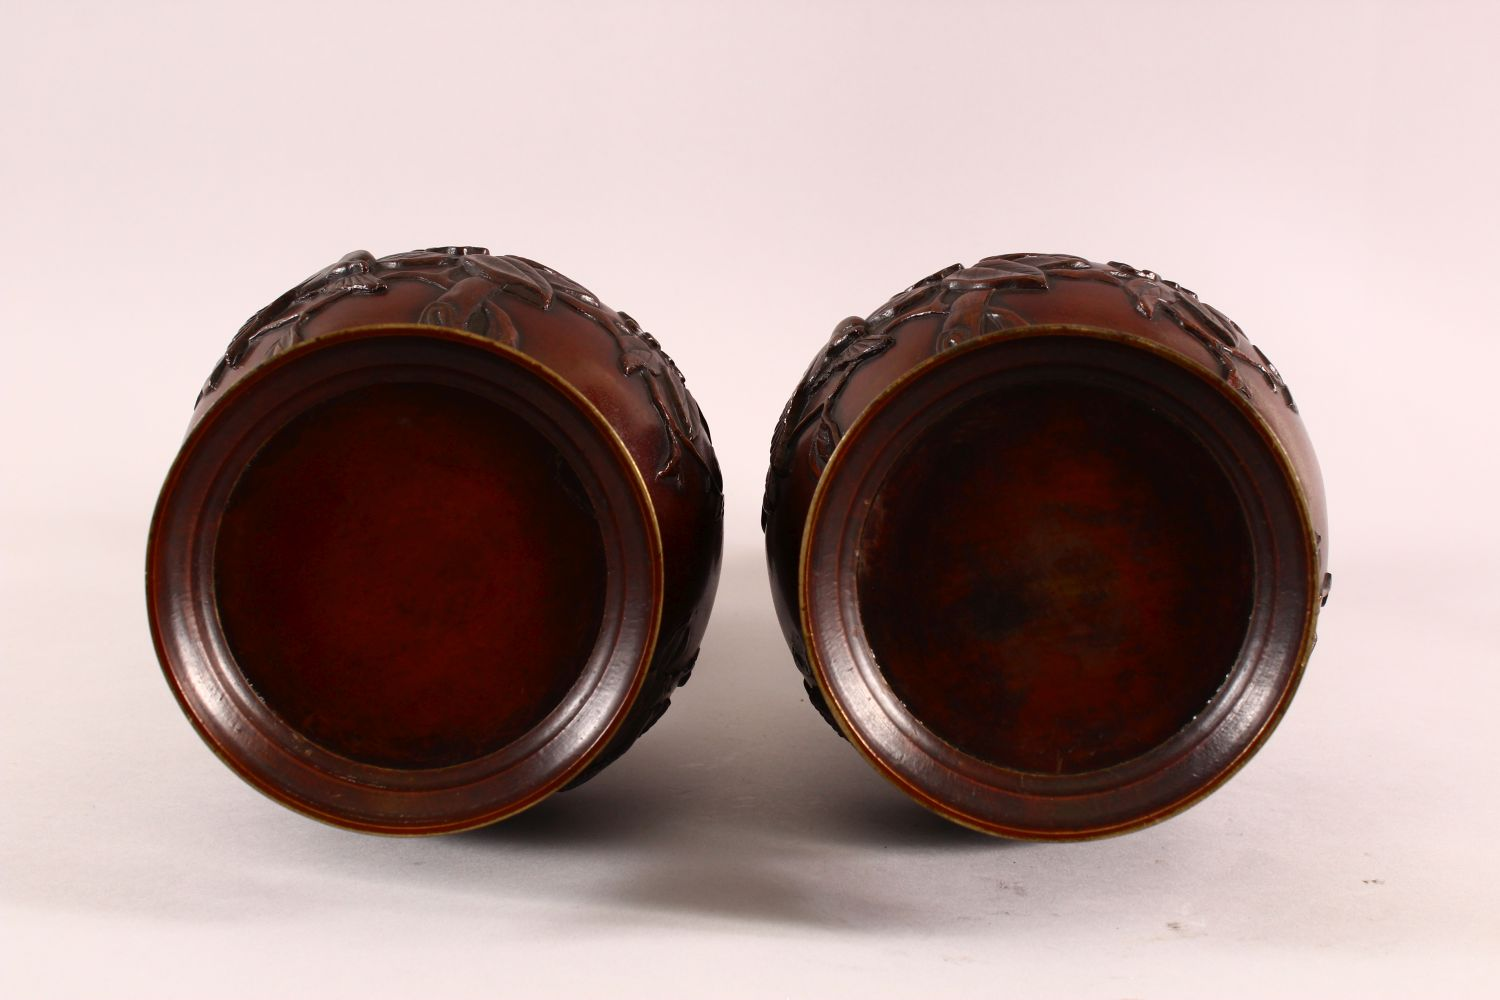 A PAIR OF JAPANESE RELIEF BRONZE VASES, with twin handles, relief birds and flora decoration, 40cm - Image 7 of 7